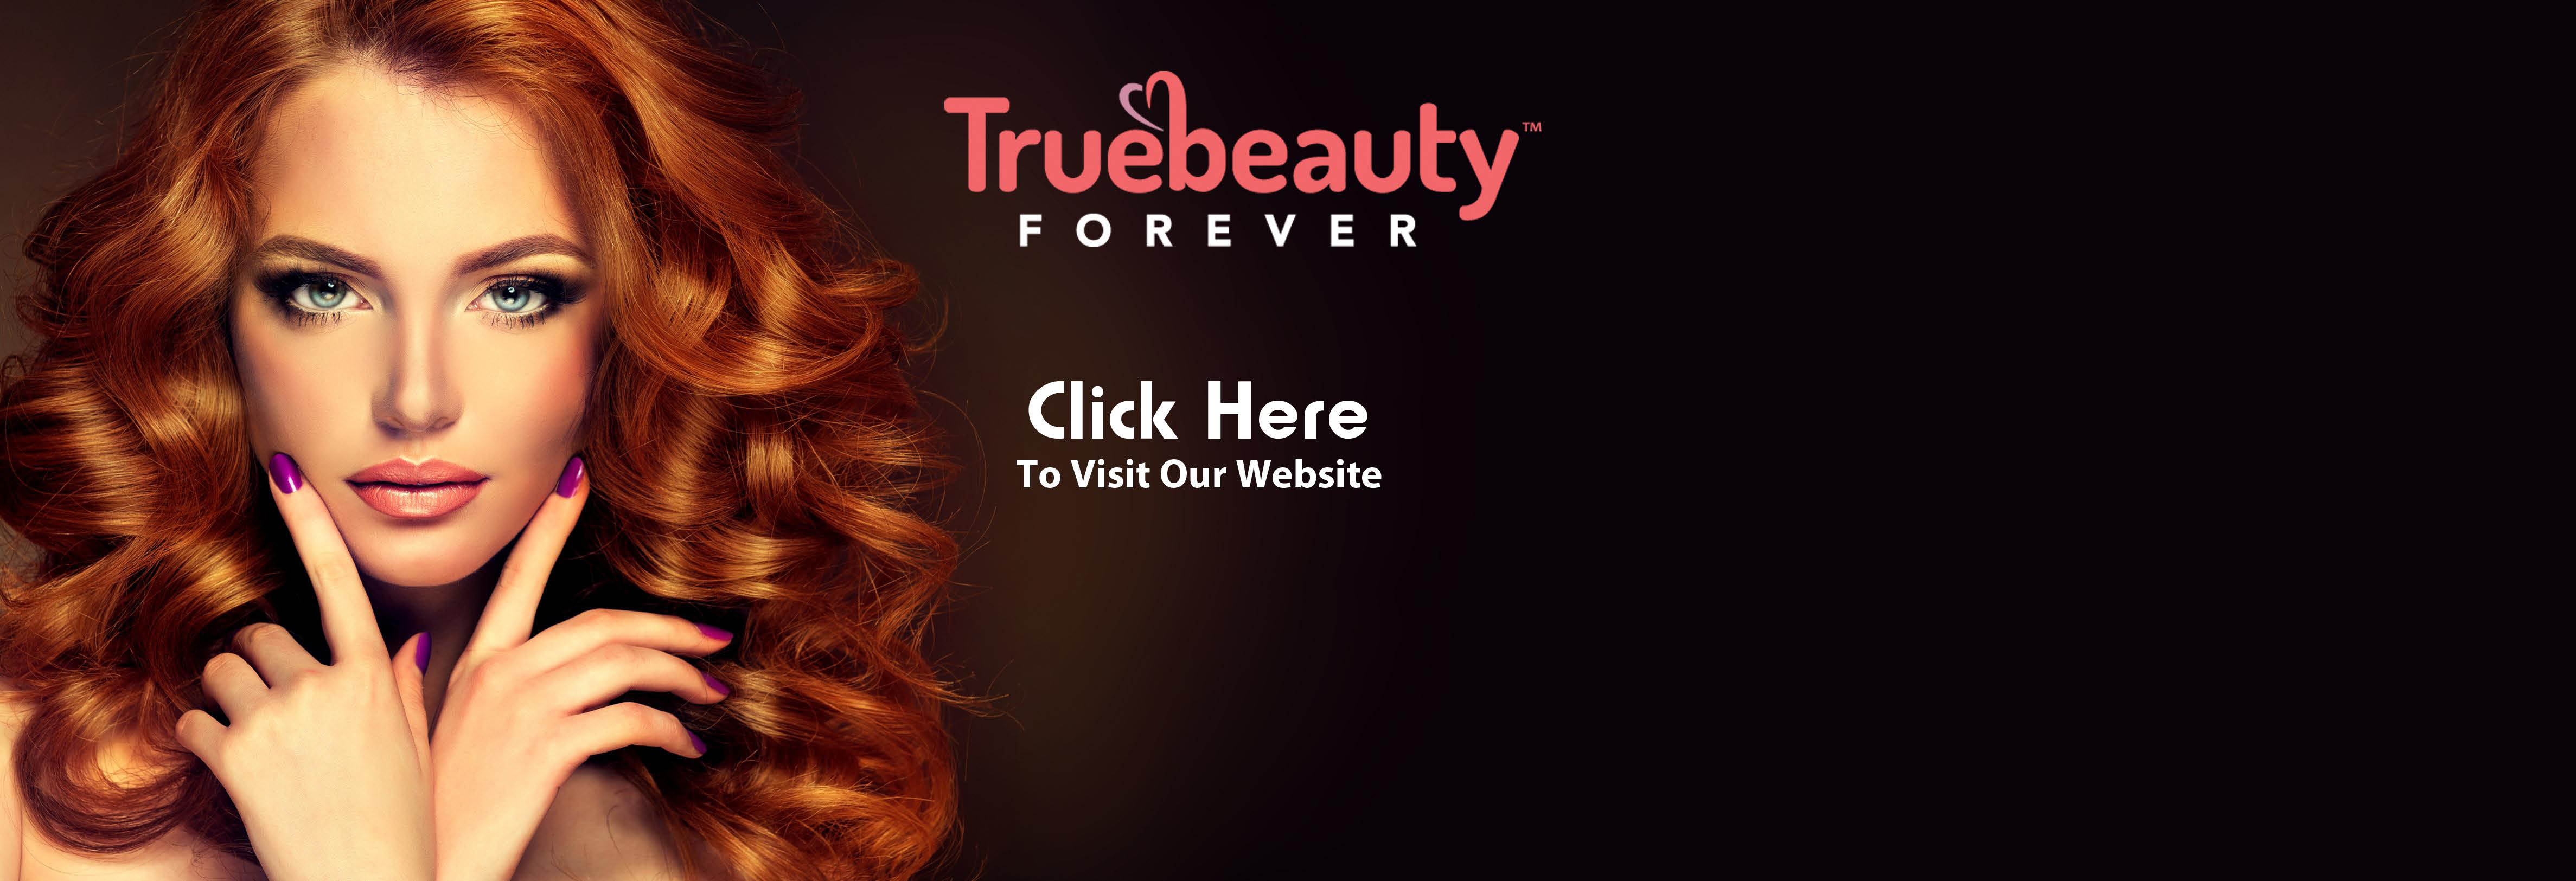 Truebeauty Forever Kaysville, UT. eyelash extensions,skin care,microblading brows, banner